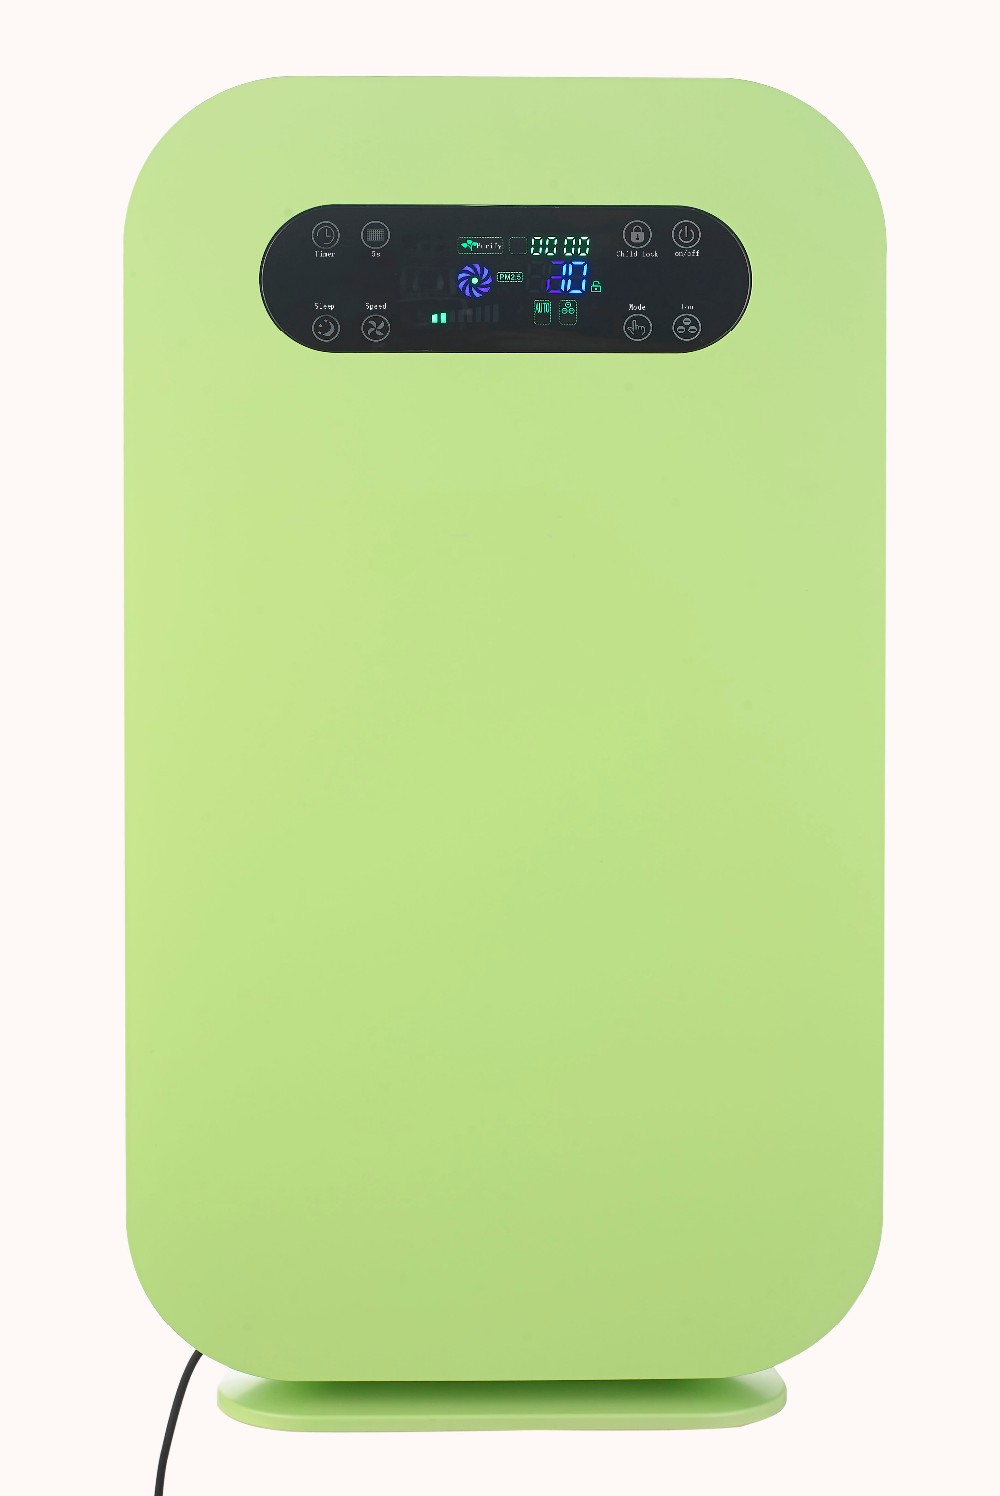 air quality Integration monitor of Particle Pollution(PM2.5 or PM10) / Formaldehyde(HCHO) sensor detector